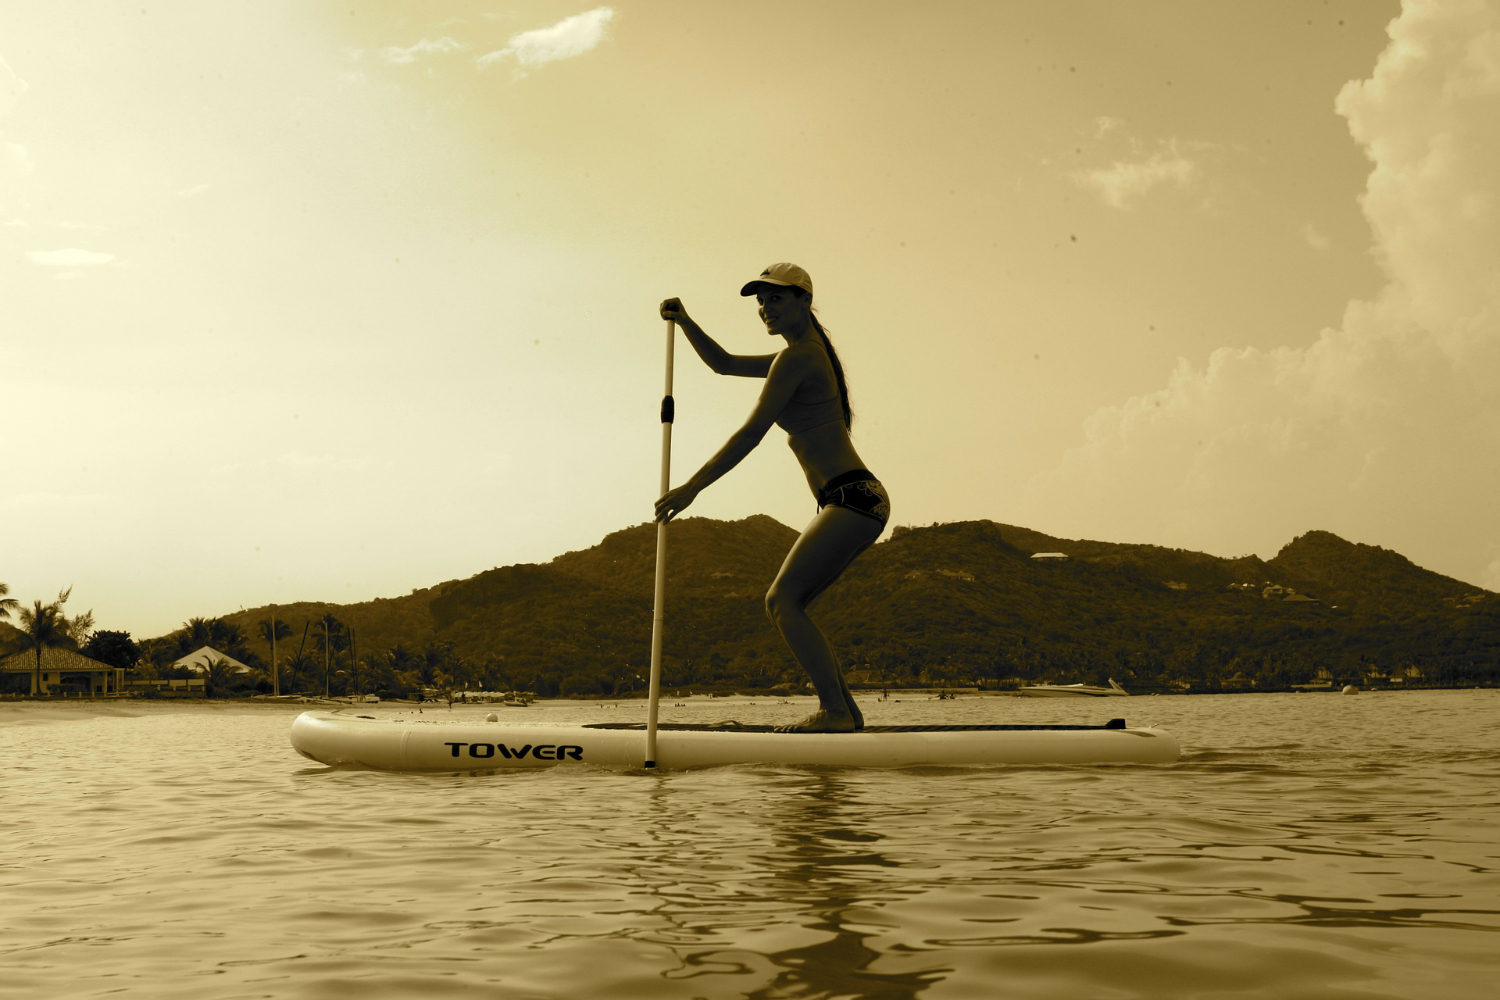 paddle boarding on inflatable board at sunset